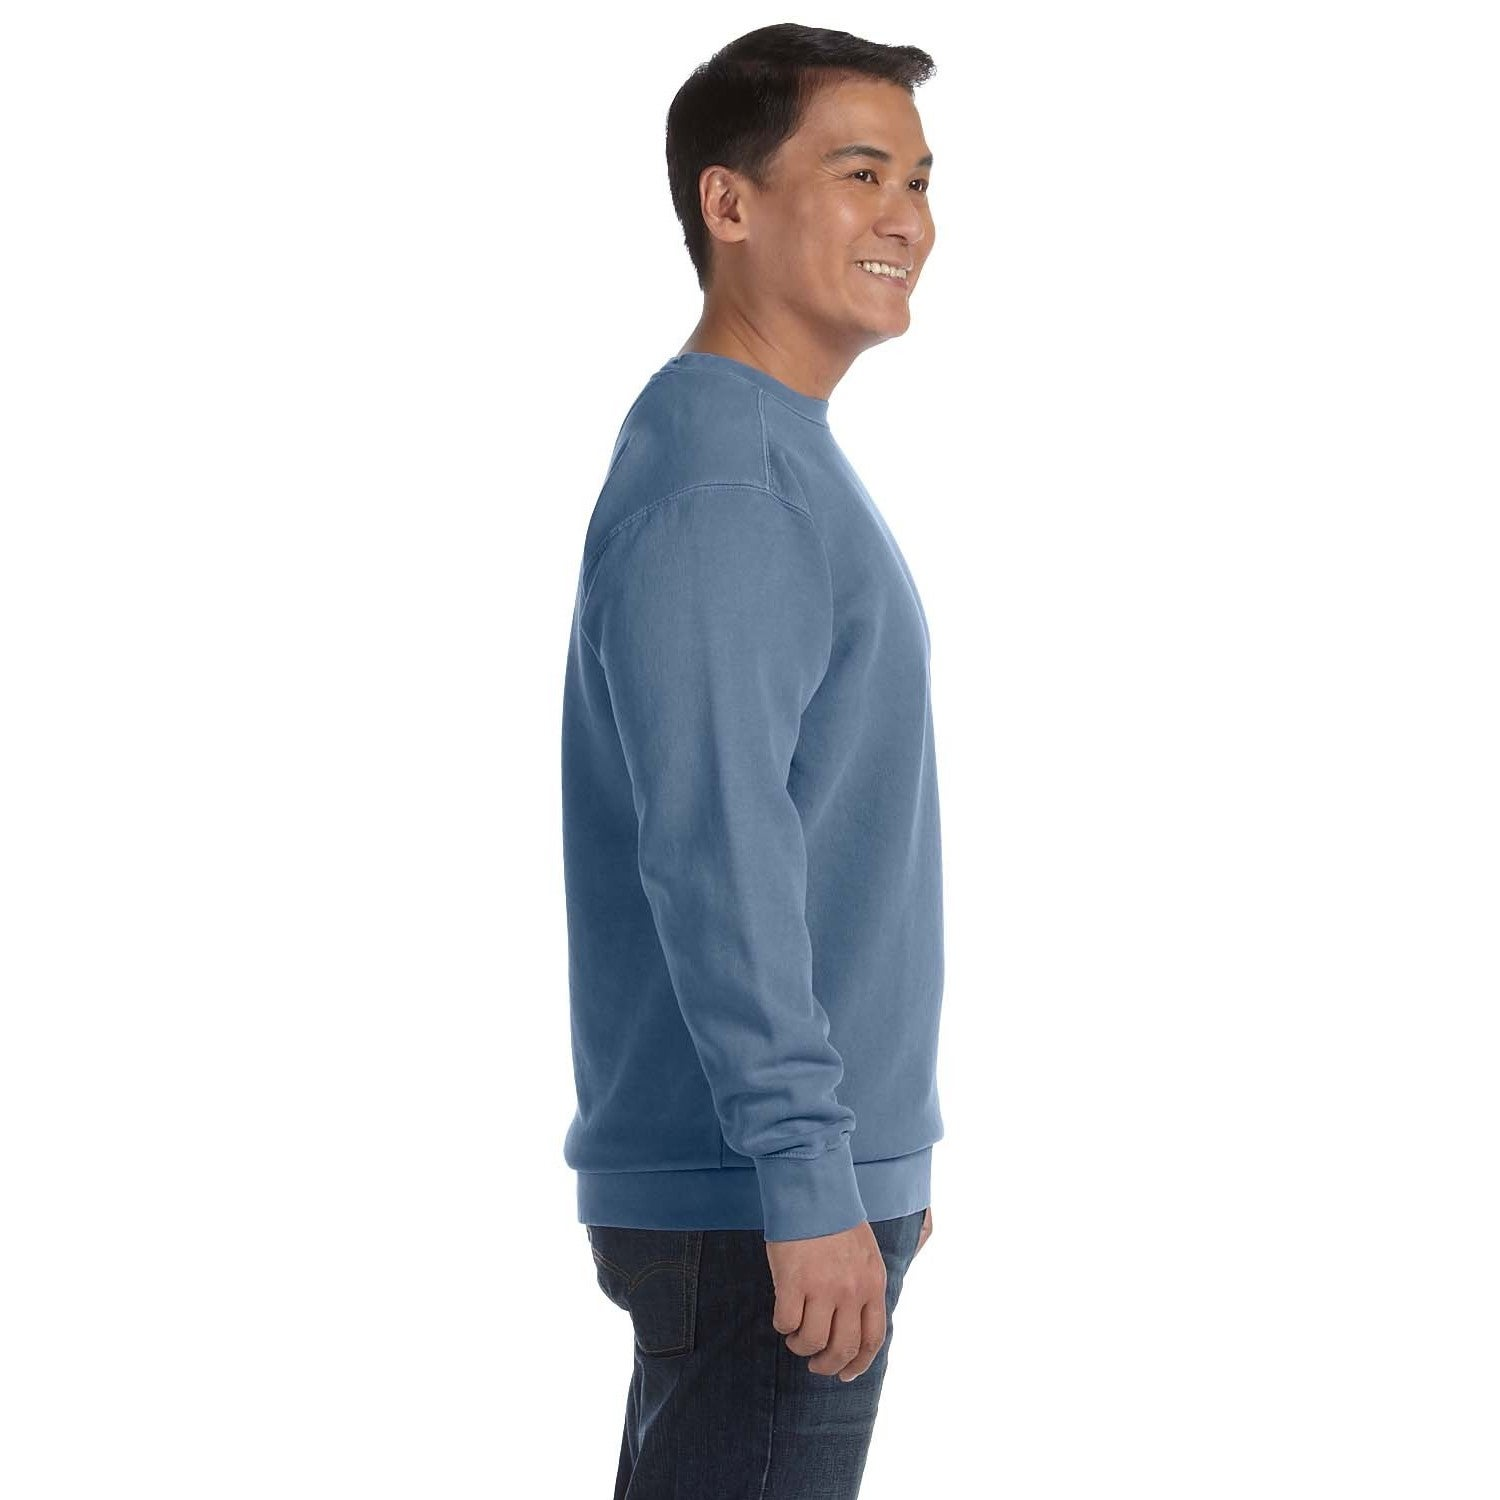 e6f71396c Shop Men s Blue Fleece Big and Tall Garment-dyed Crew-neck Sweater - On  Sale - Free Shipping On Orders Over  45 - Overstock.com - 12450179